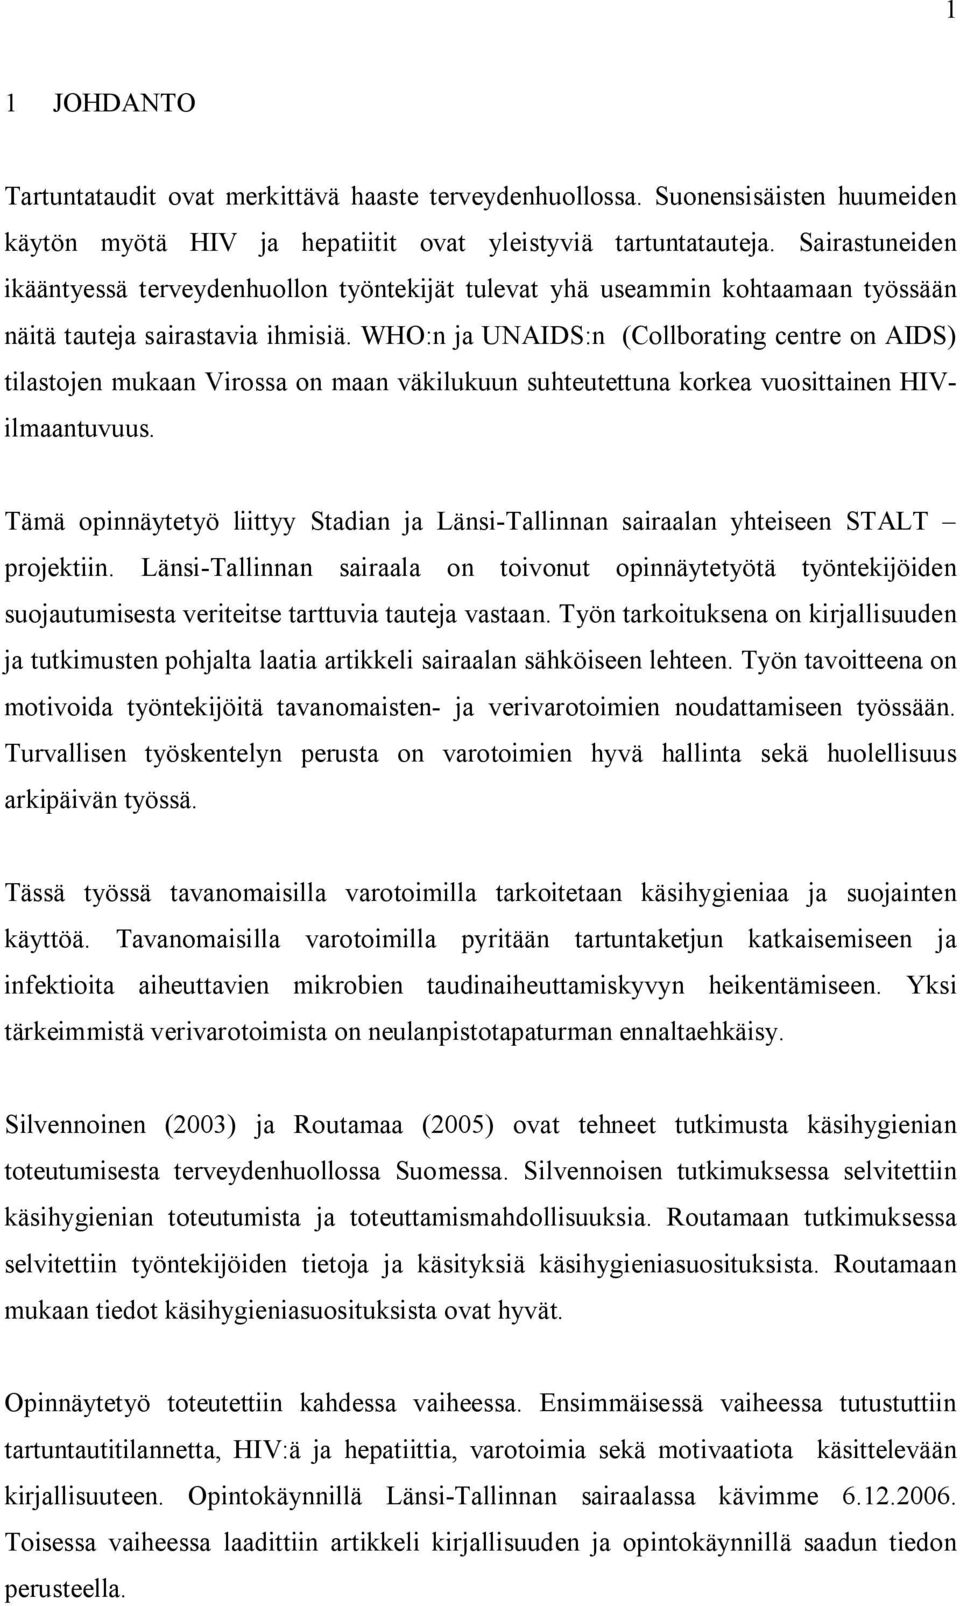 WHO:n ja UNAIDS:n (Collborating centre on AIDS) tilastojen mukaan Virossa on maan väkilukuun suhteutettuna korkea vuosittainen HIVilmaantuvuus.